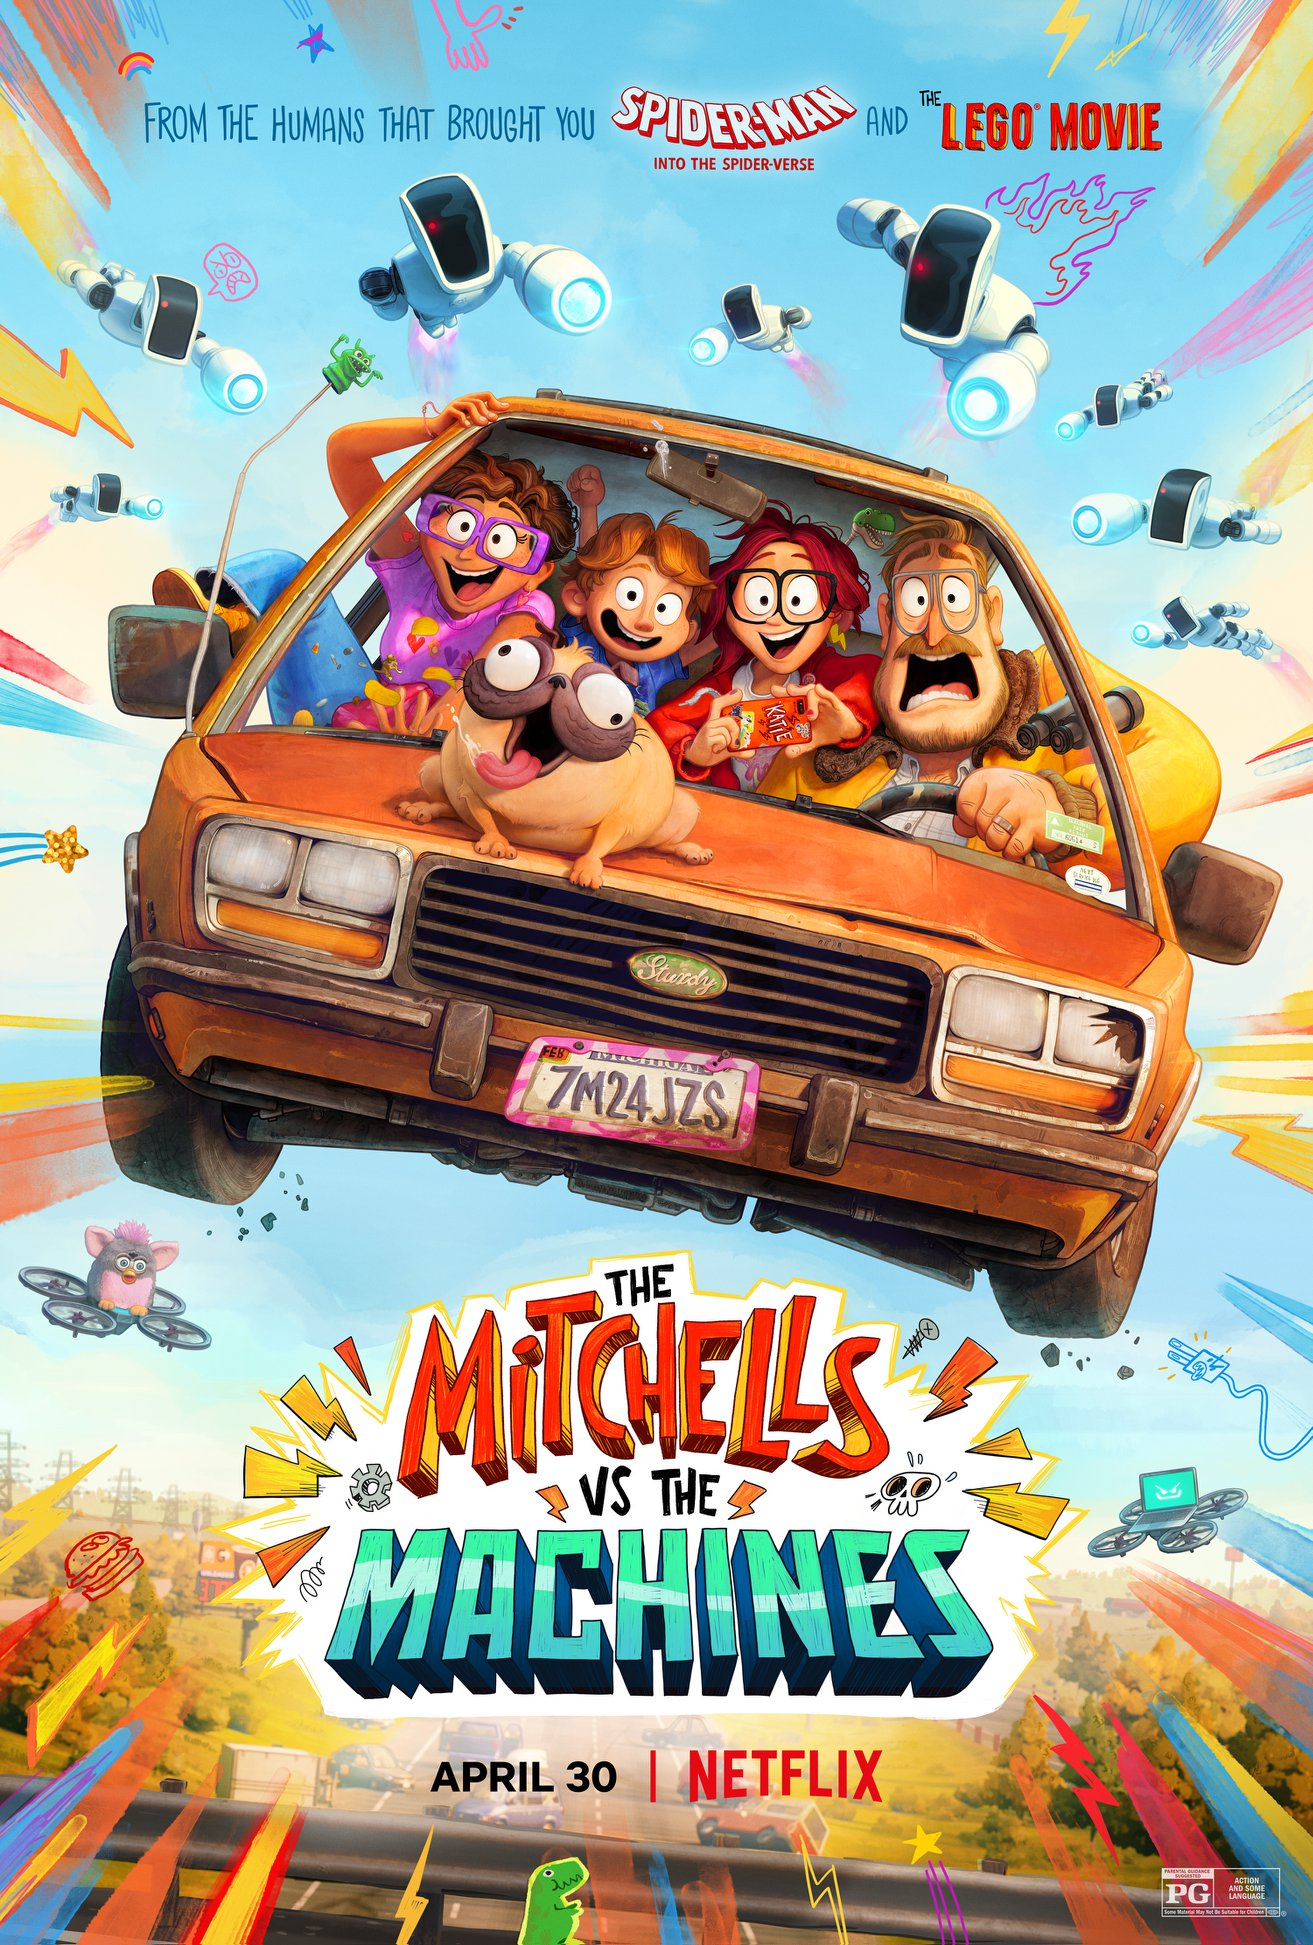 The Mitchells vs the Machines, Netflix, Sony Pictures Animation, Lord Miller, Columbia Pictures, One Cool Film Production